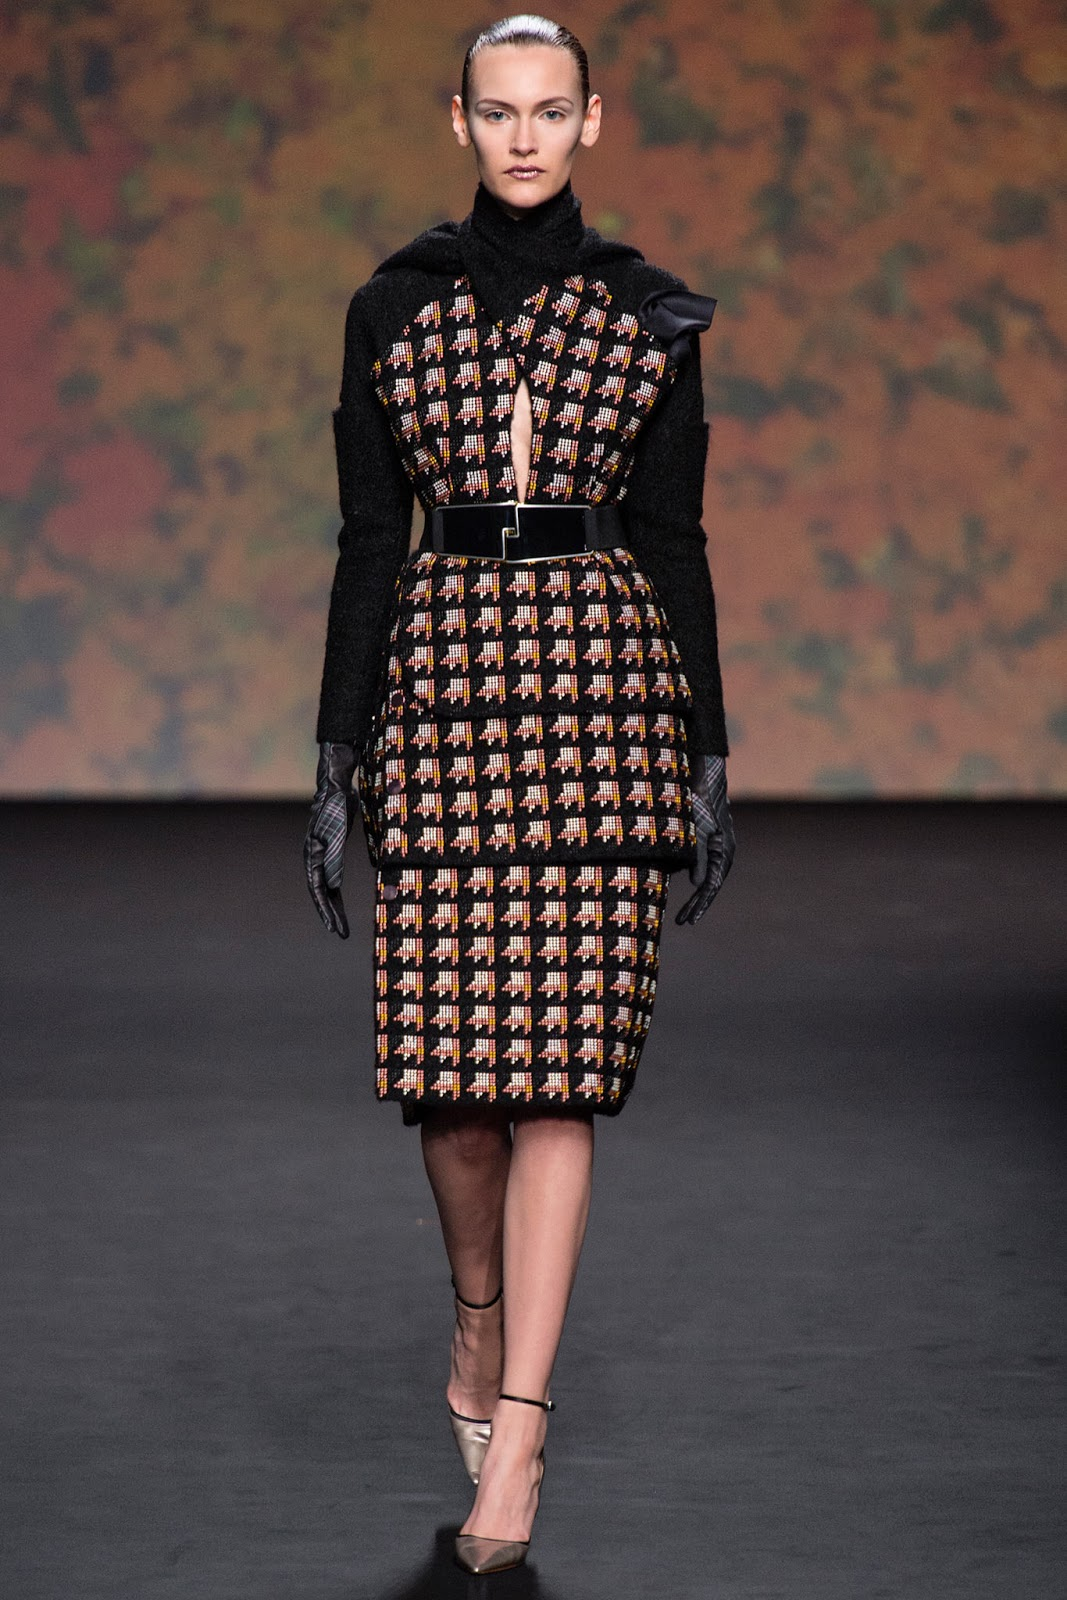 2014 Fall Winter 2015 Fashion Trends For Teensteens: CHRISTIAN DIOR HAUTE COUTURE FALL WINTER 2014 (17